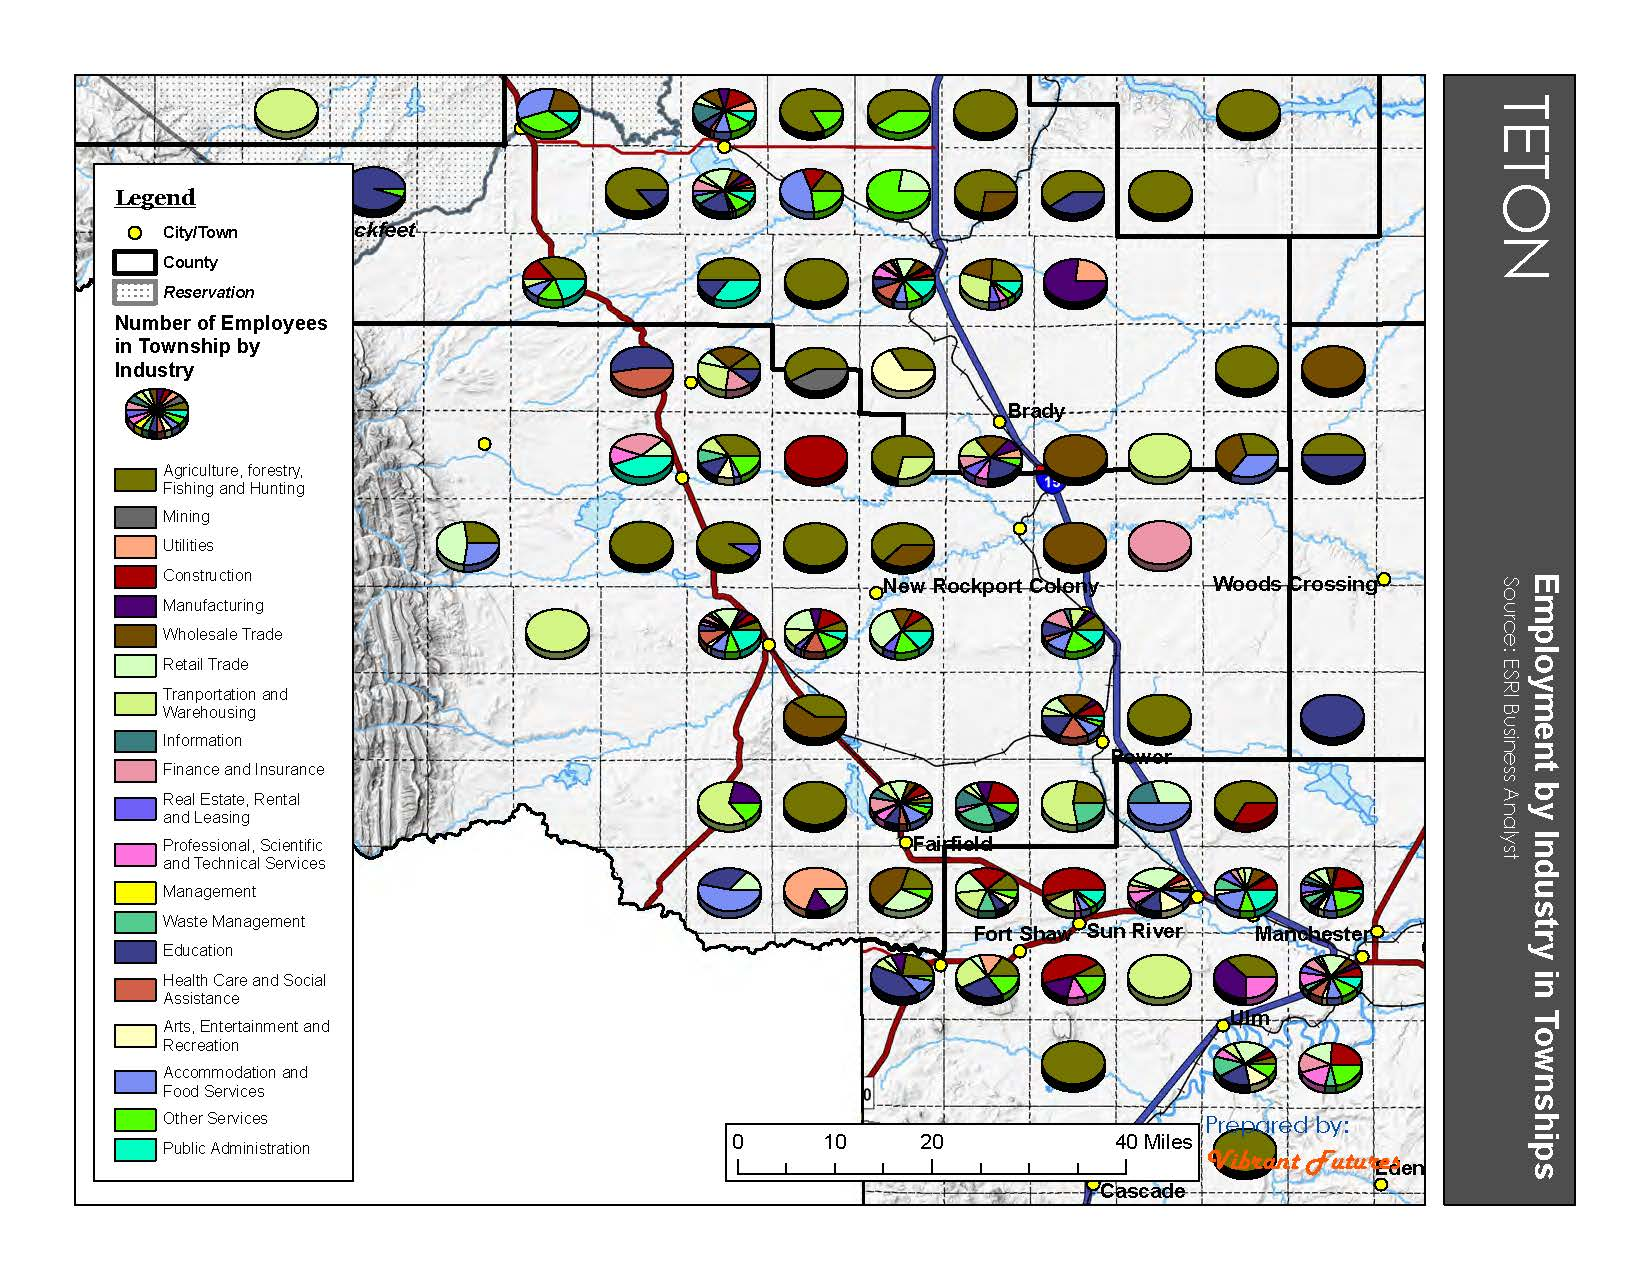 Employment by Industry in Townships Teton County